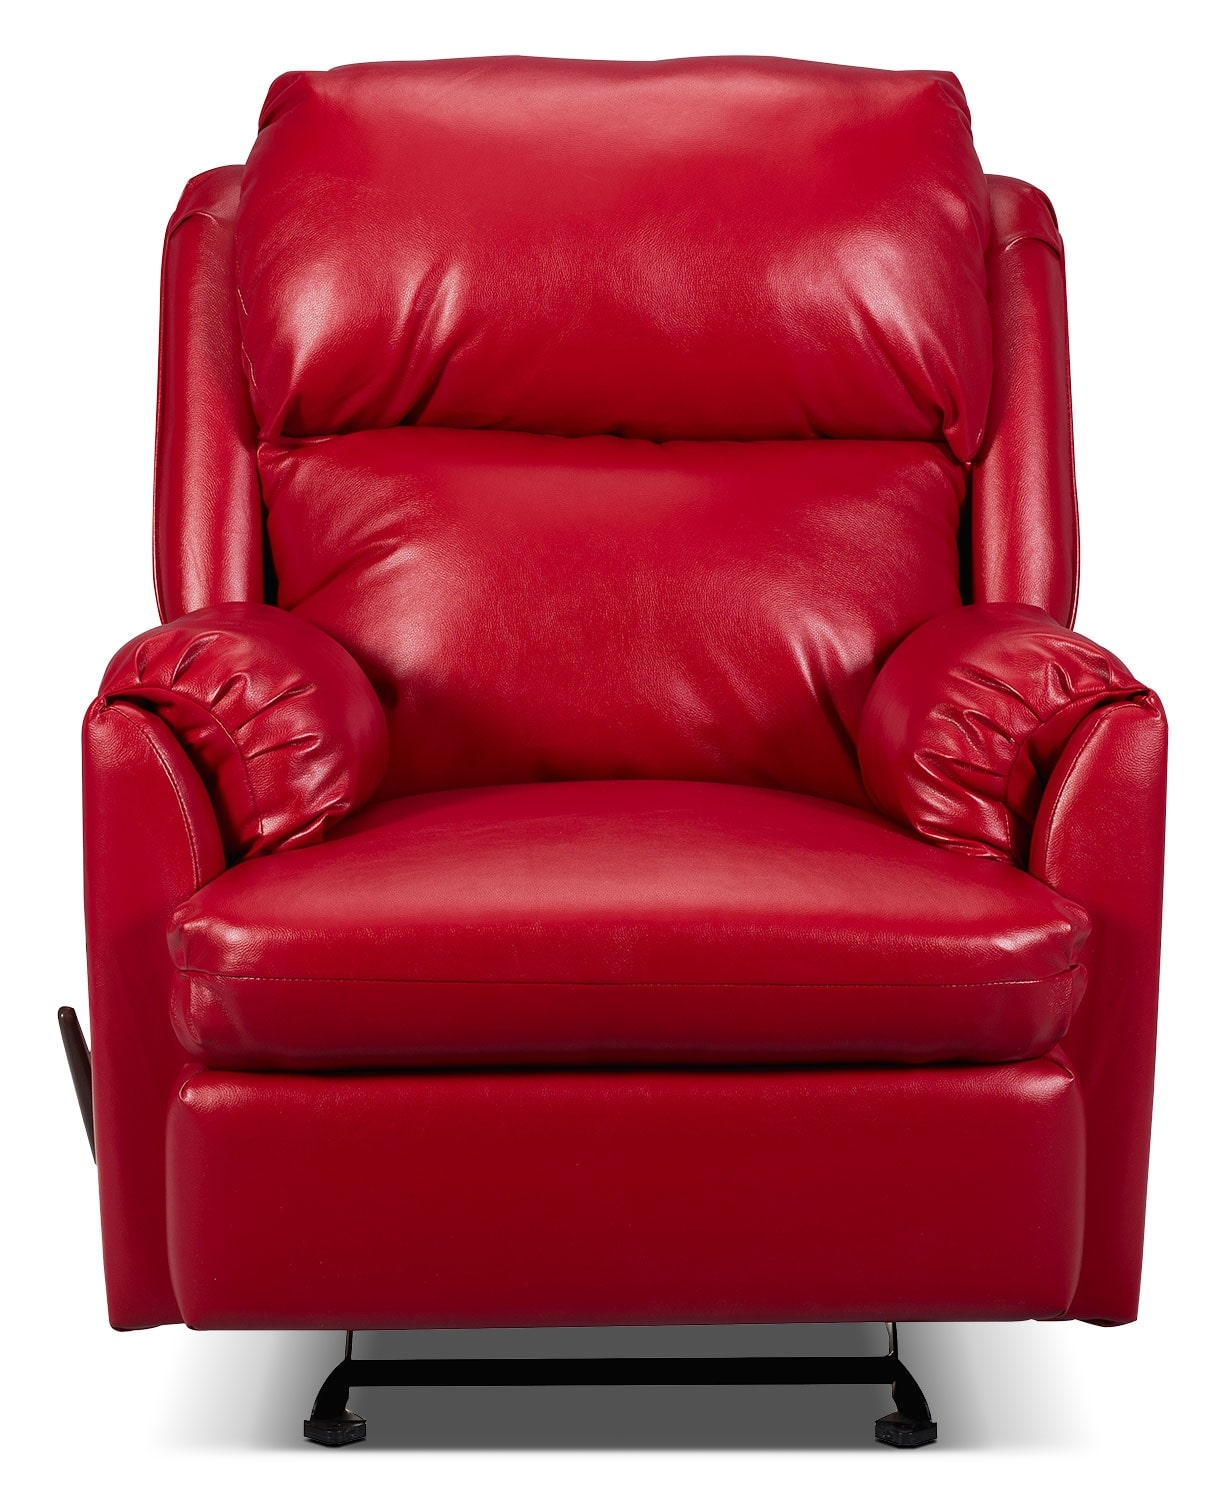 Drogba Faux Leather Reclining Chair - Red